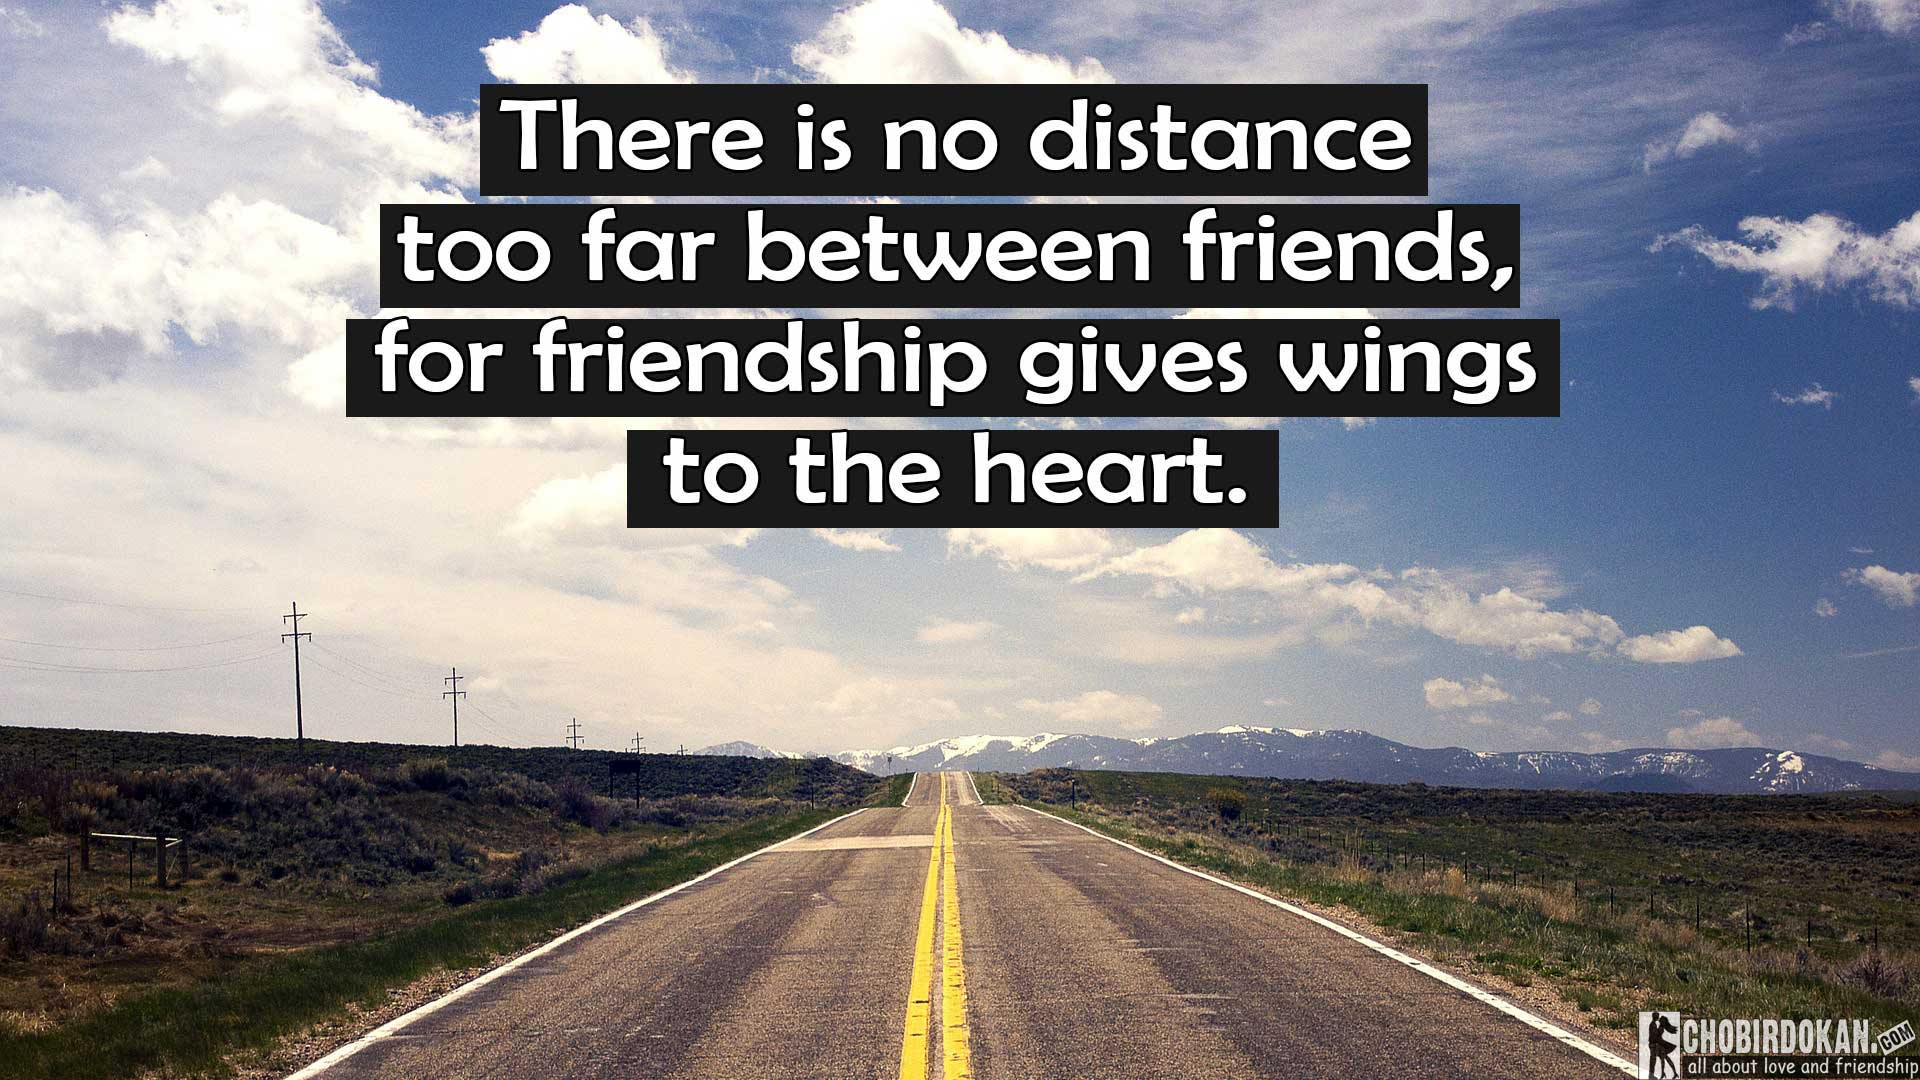 Quotes About Friendships And Distance 20 Long Distance Friendship Quotes Images Chobirdokan